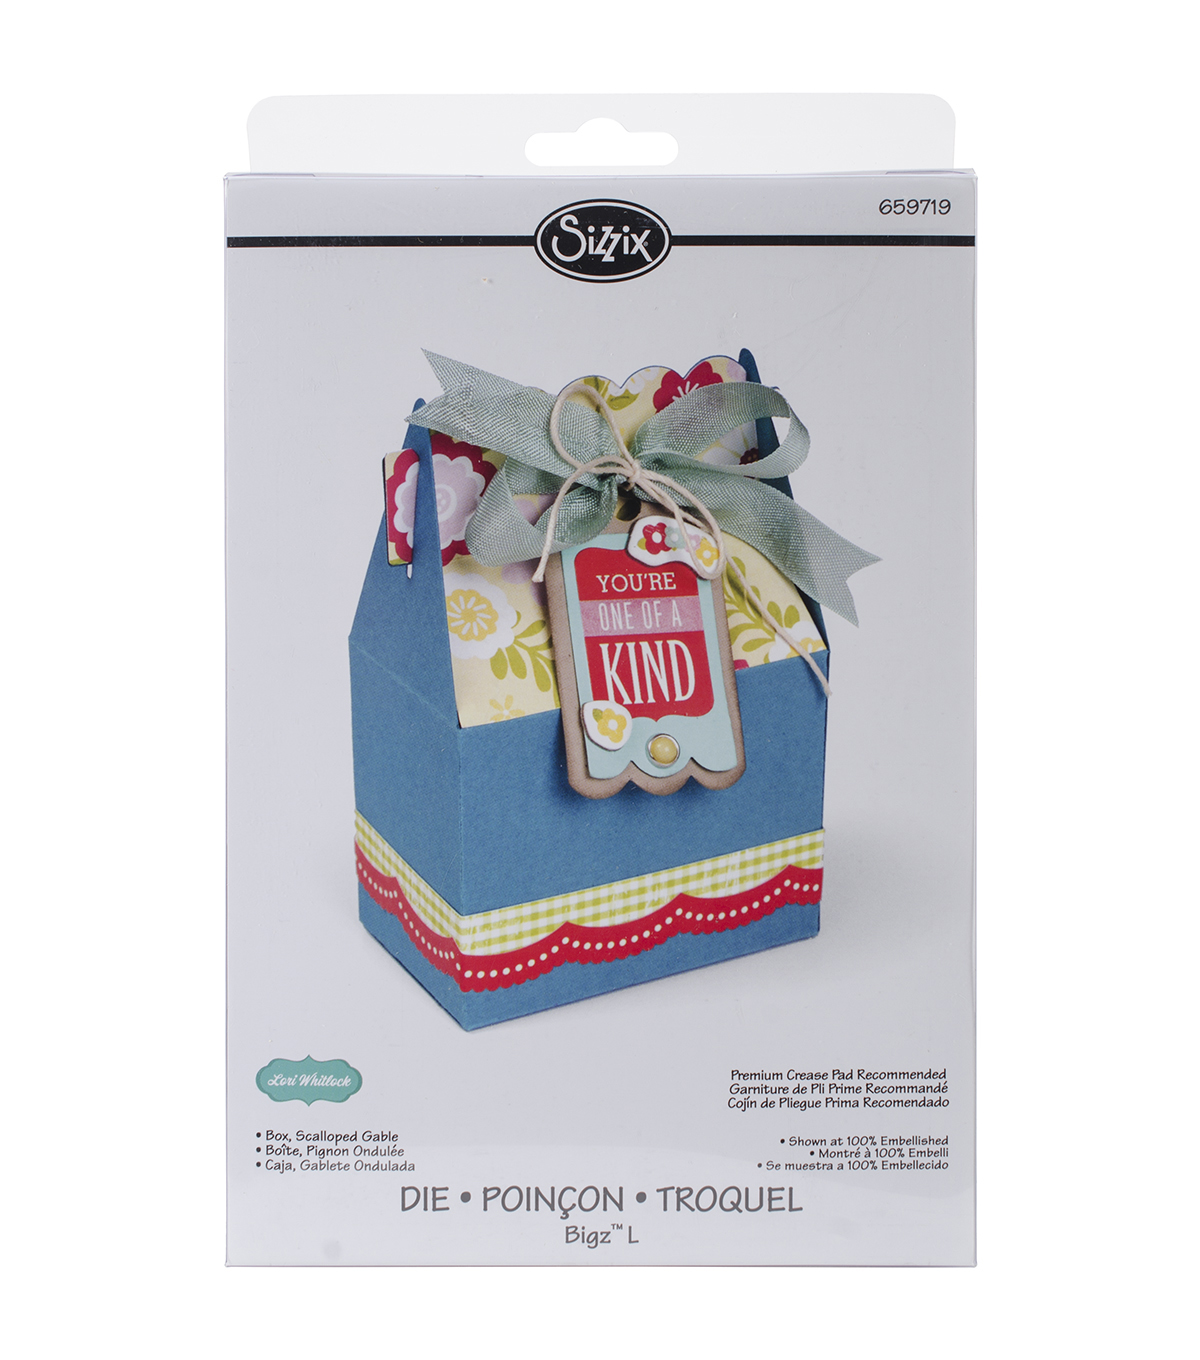 Sizzix™ Bigz™ Lori Whitlock L Die-Scalloped Gable Box